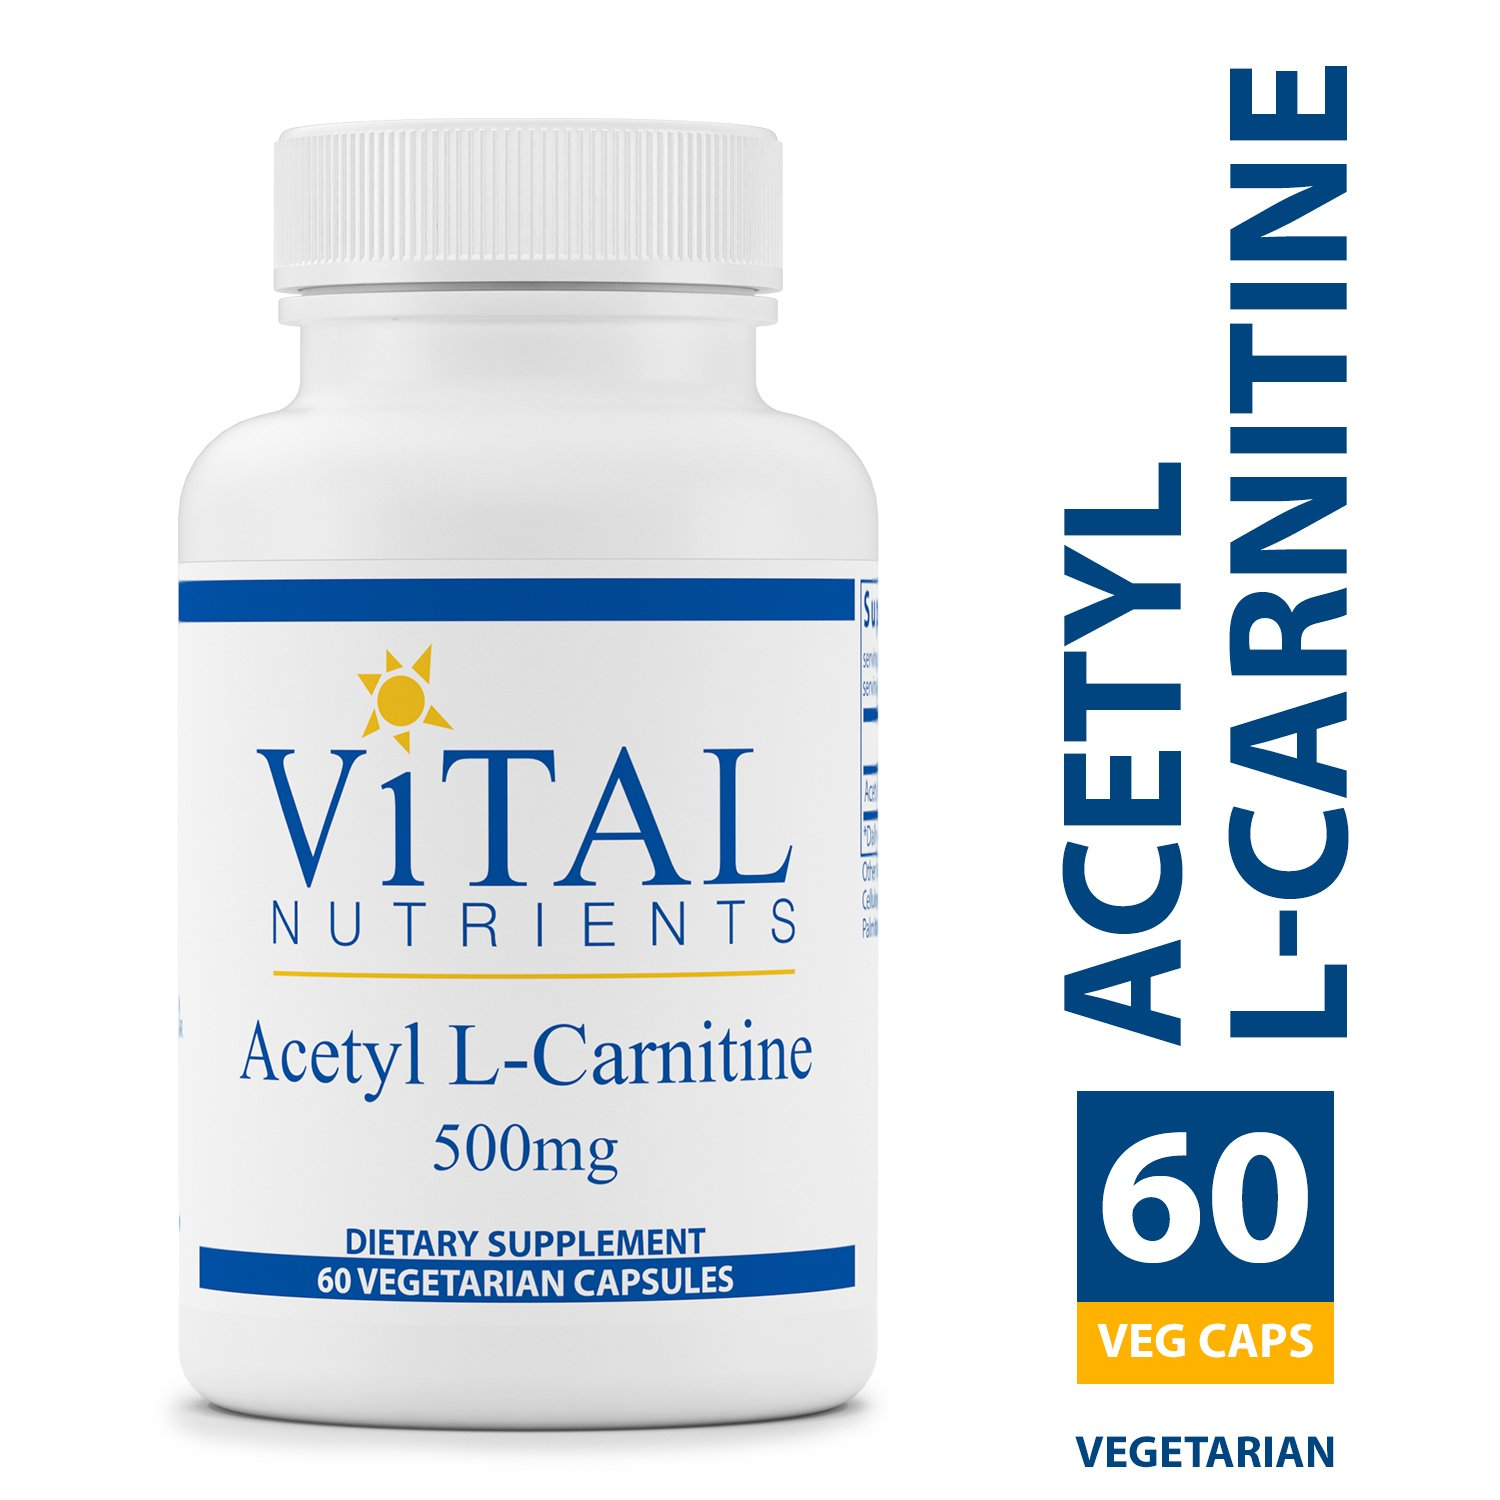 Vital Nutrients – Acetyl L-Carnitine 500 mg – Supports Normal Brain Function – 60 Capsules per Bottle